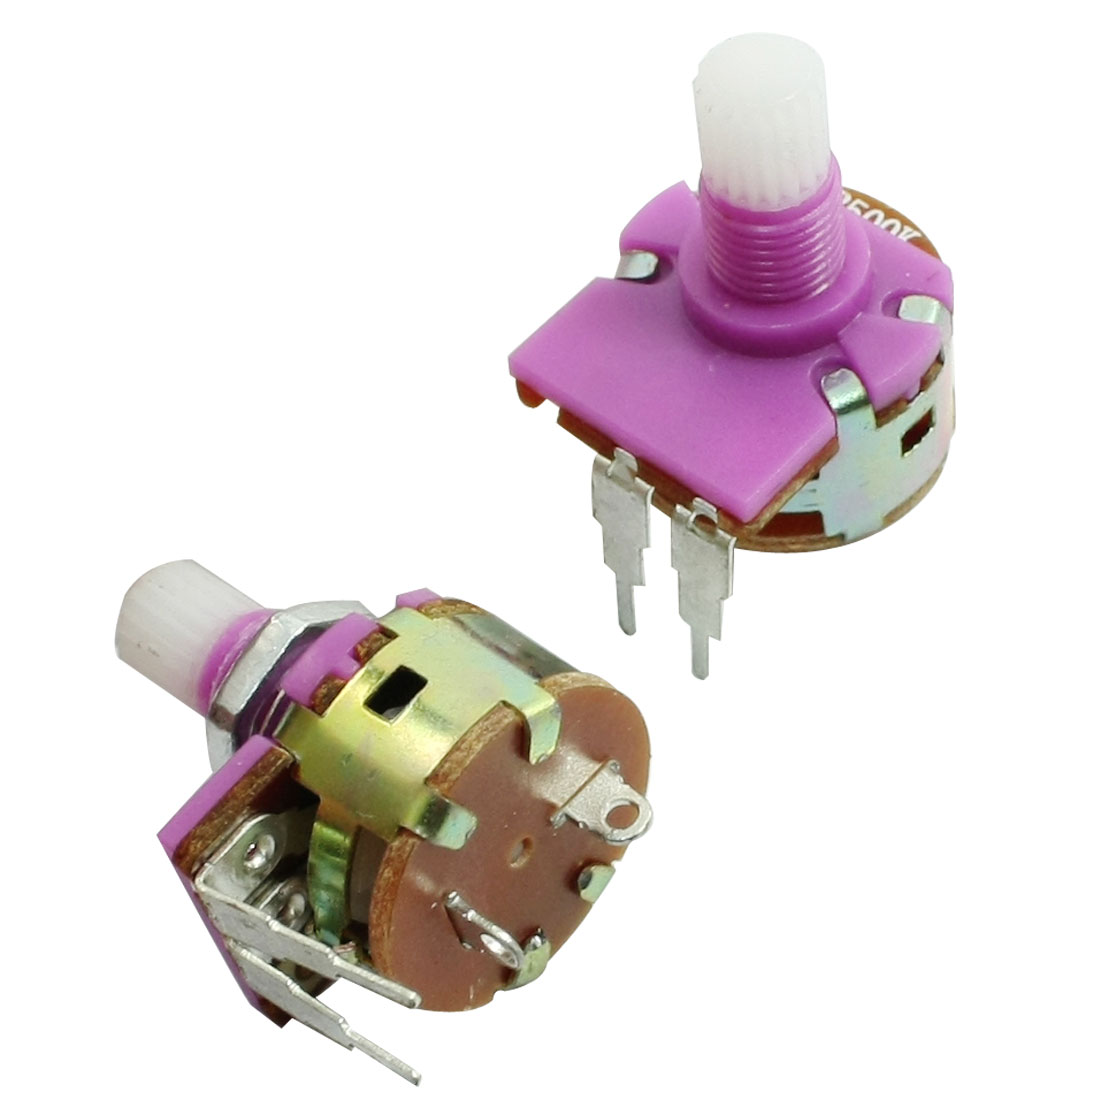 2pcs B500K 500K ohm 6mm Knurled Shaft Dia Rotary Potentiometer Pot